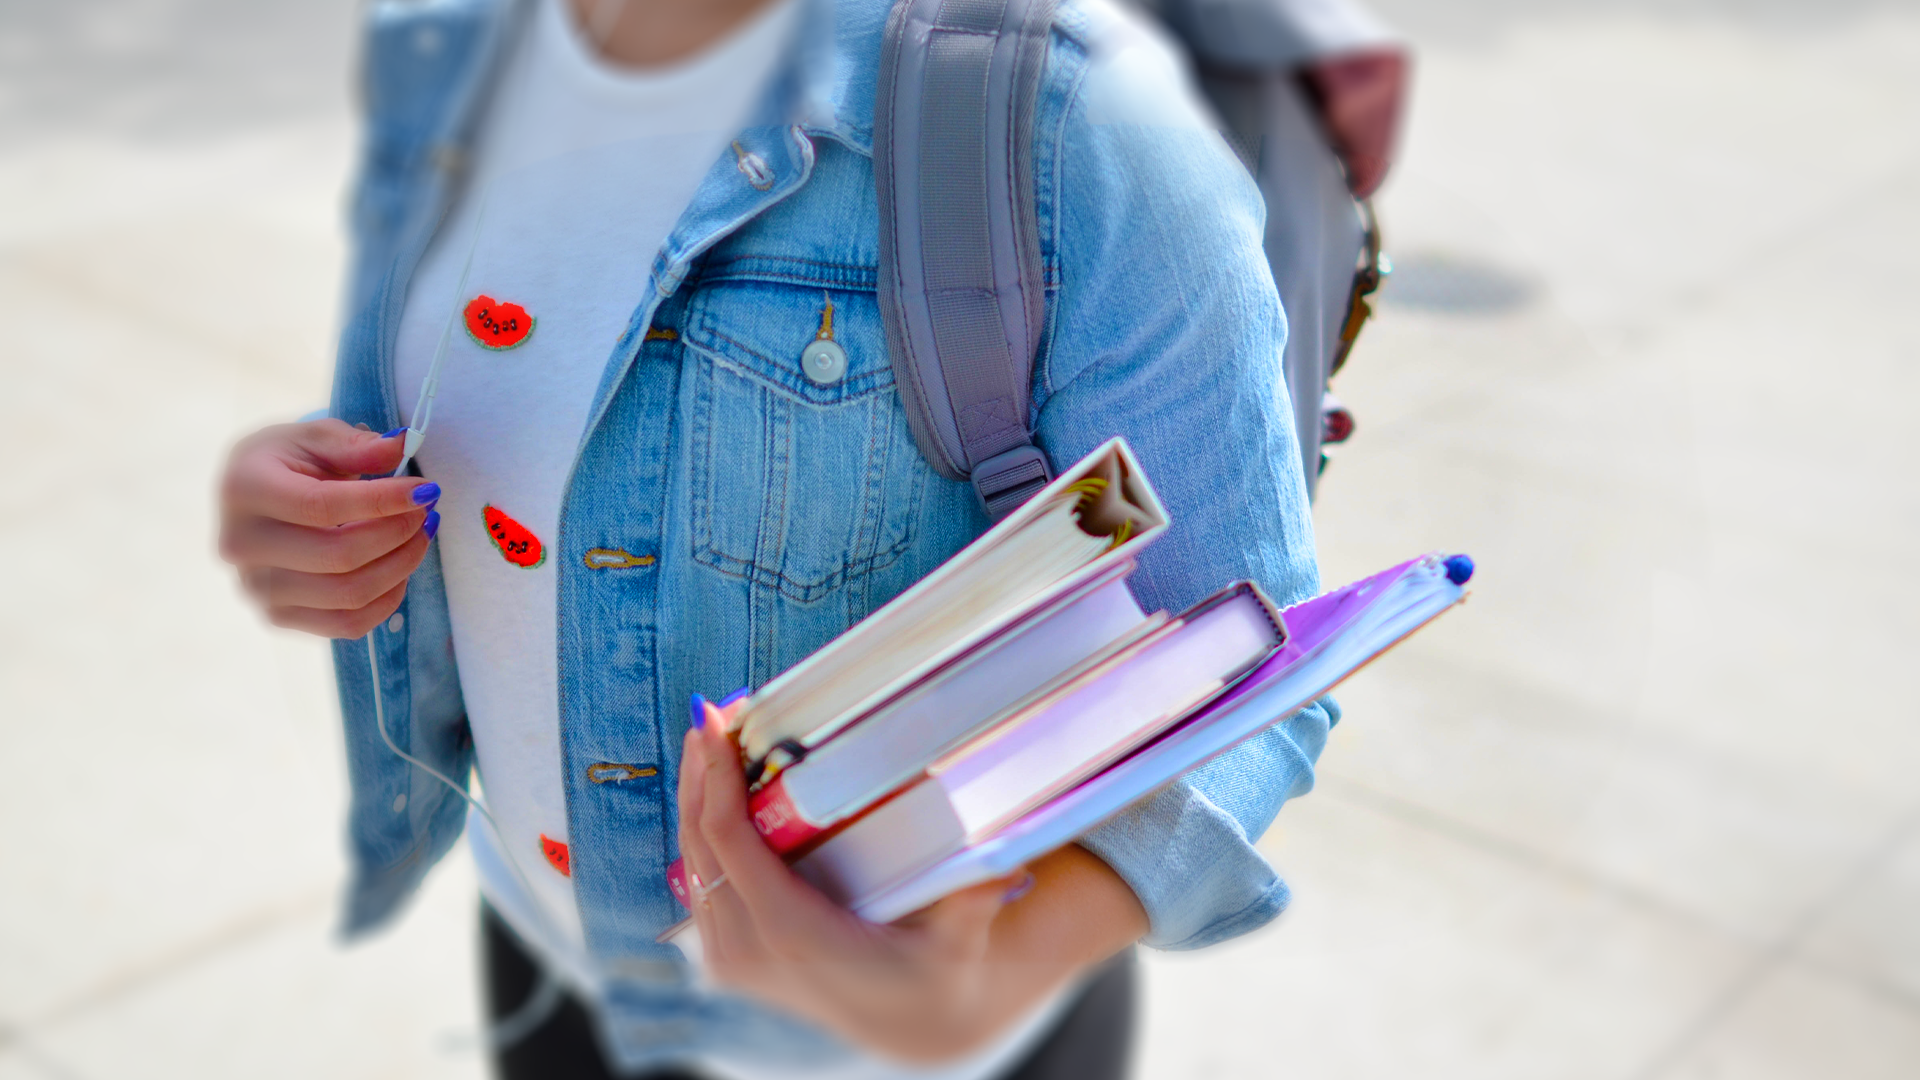 VR in education - a student holding books